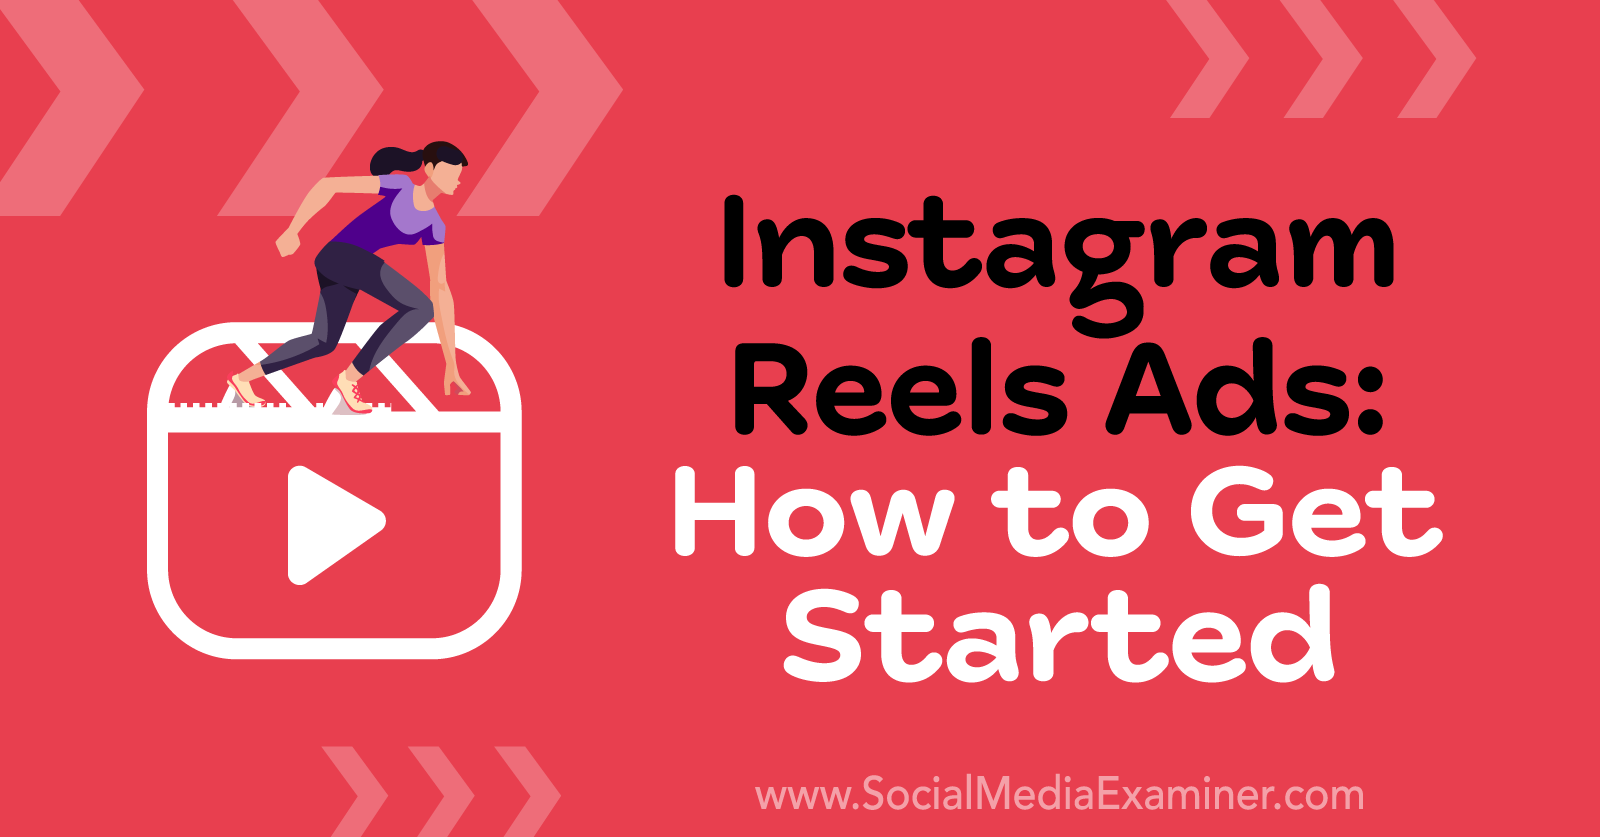 Instagram Reels Ads: How to Get Started by Corinna Keefe on Social Media Examiner.